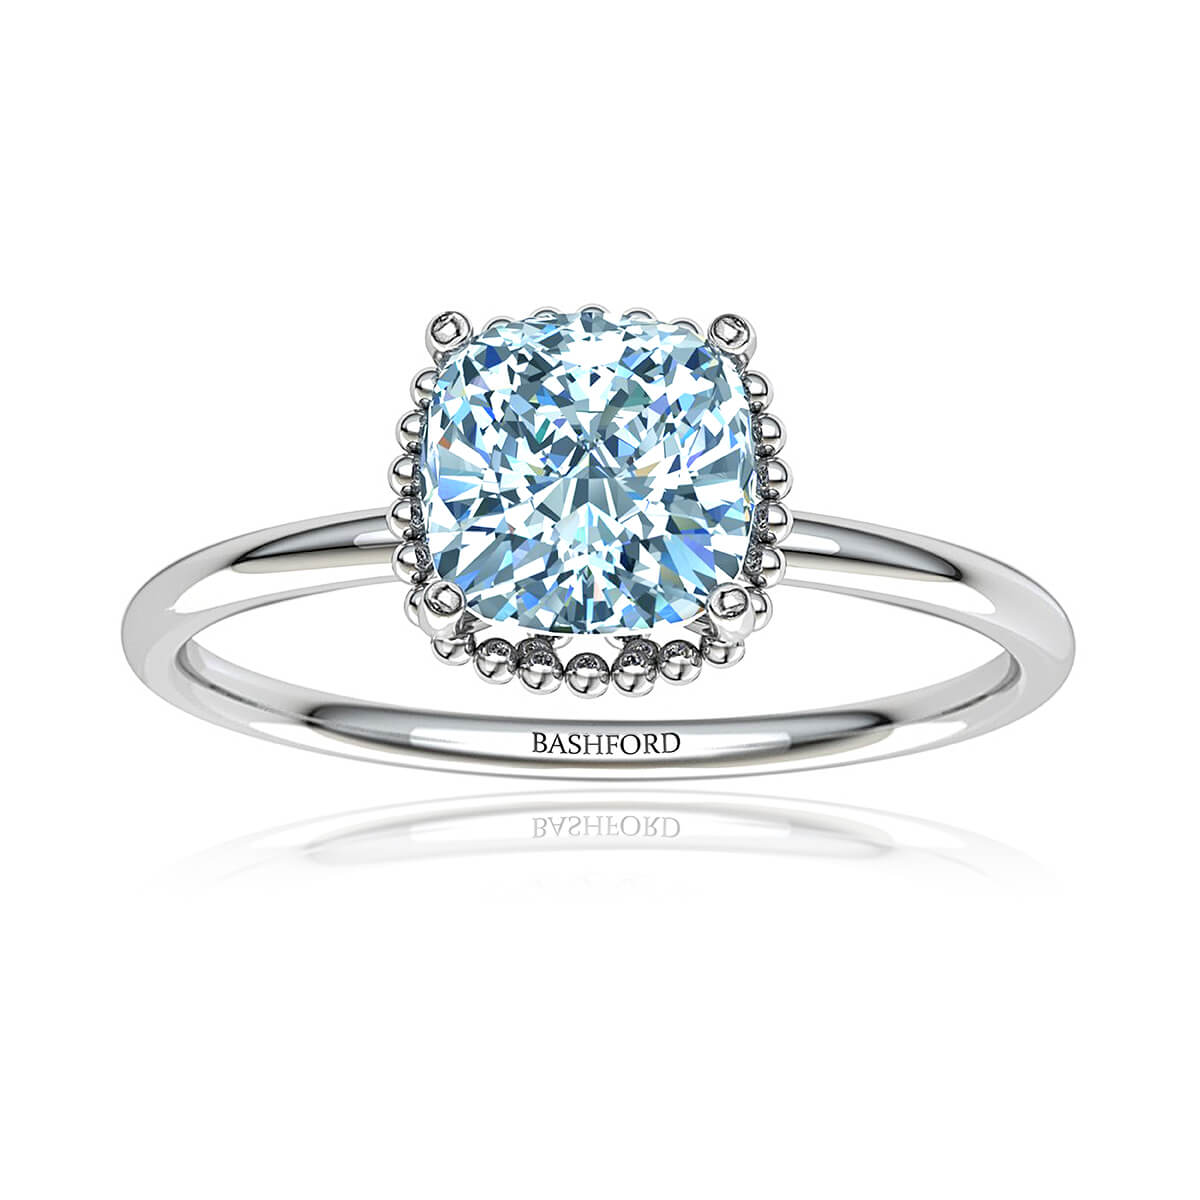 Rosarica Moissanite Ring (with 2 1/8 Carat Cushion Forever One)